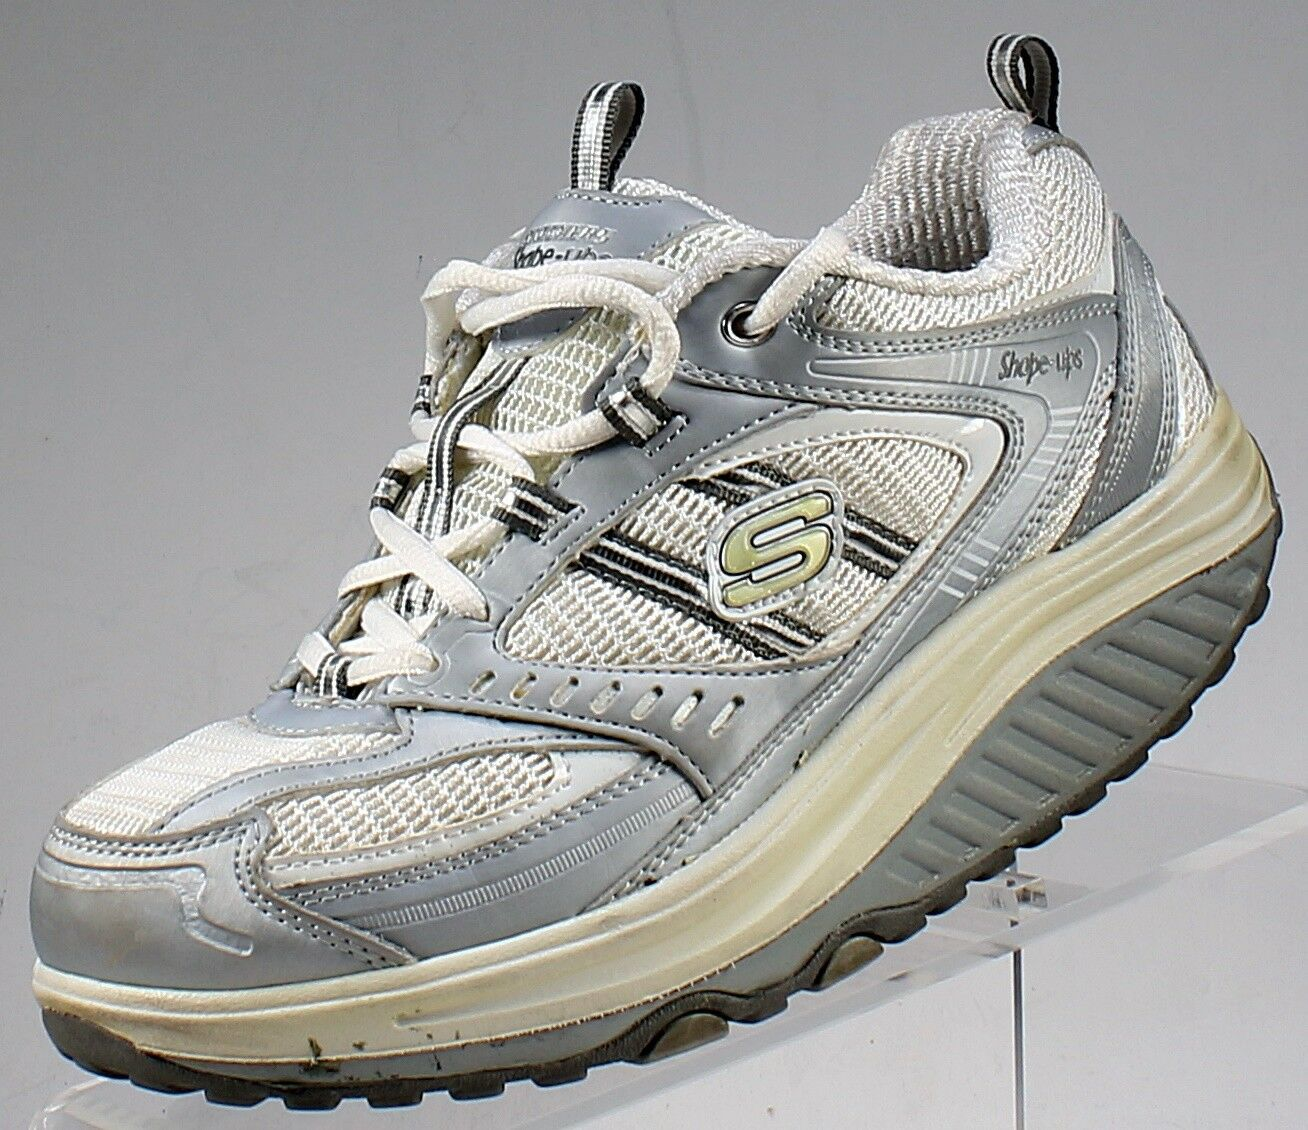 Skechers Shape Ups 11814 Women Rocker Toning Sneaker Shoe 7.5 training athletic image 2